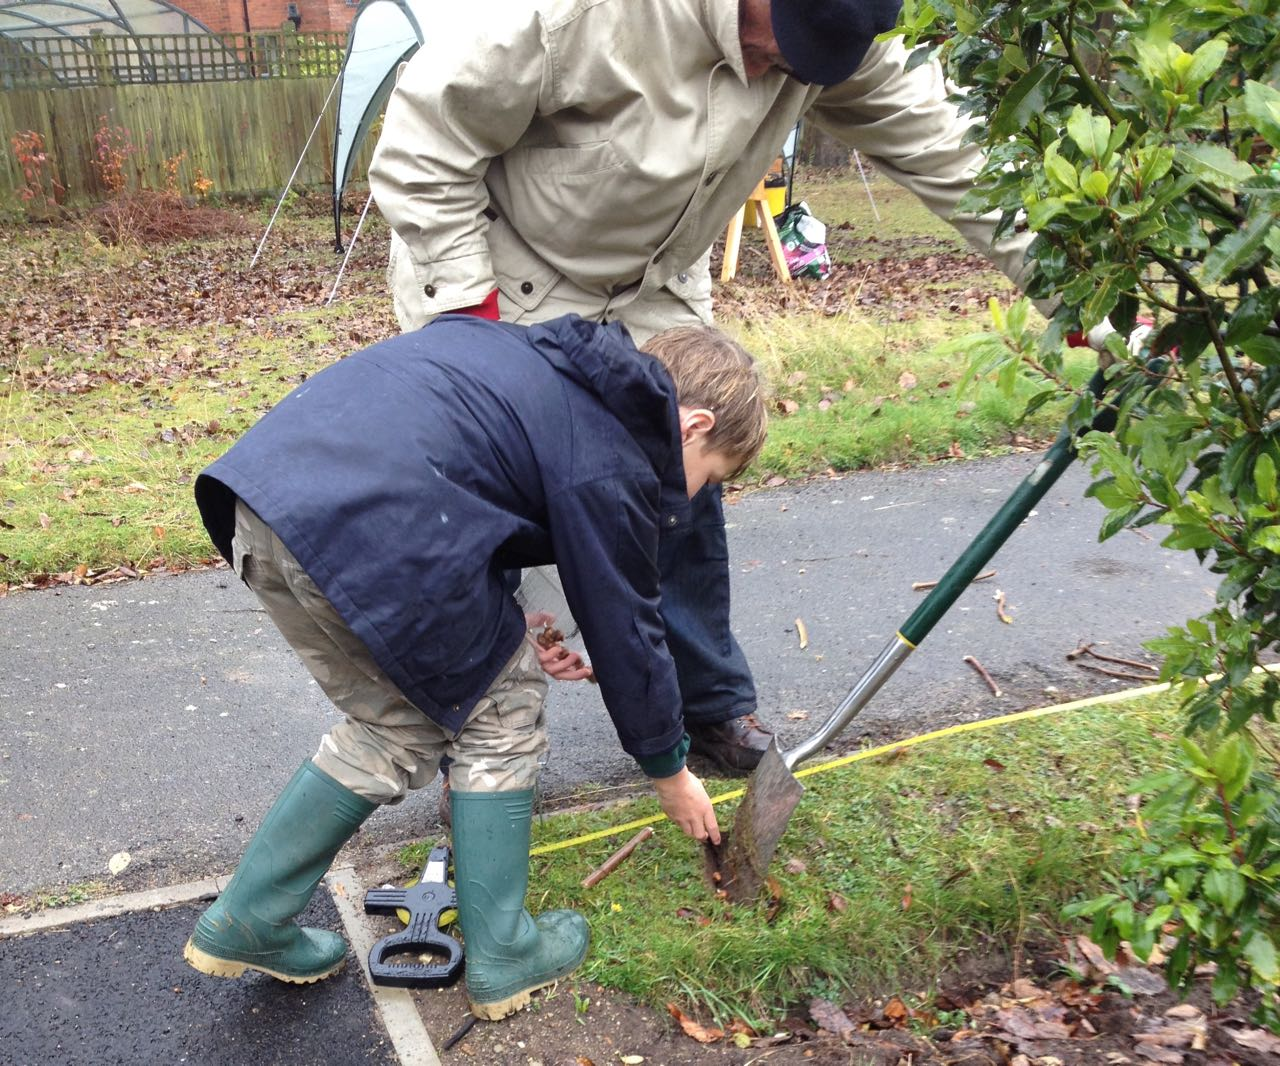 One of the cubs working with Nigel from Rotary. We planted the small corms into slits in the close-mown turf. The turf was too thick and spongy to raise a flap of earth at the right depth (it has a lot of chalk grassland plants in it like yarrow). We hope they will survive the squirrels, flower in Feb/March 2017 and proliferate to give some welcome early nectar every Spring for pollinators.